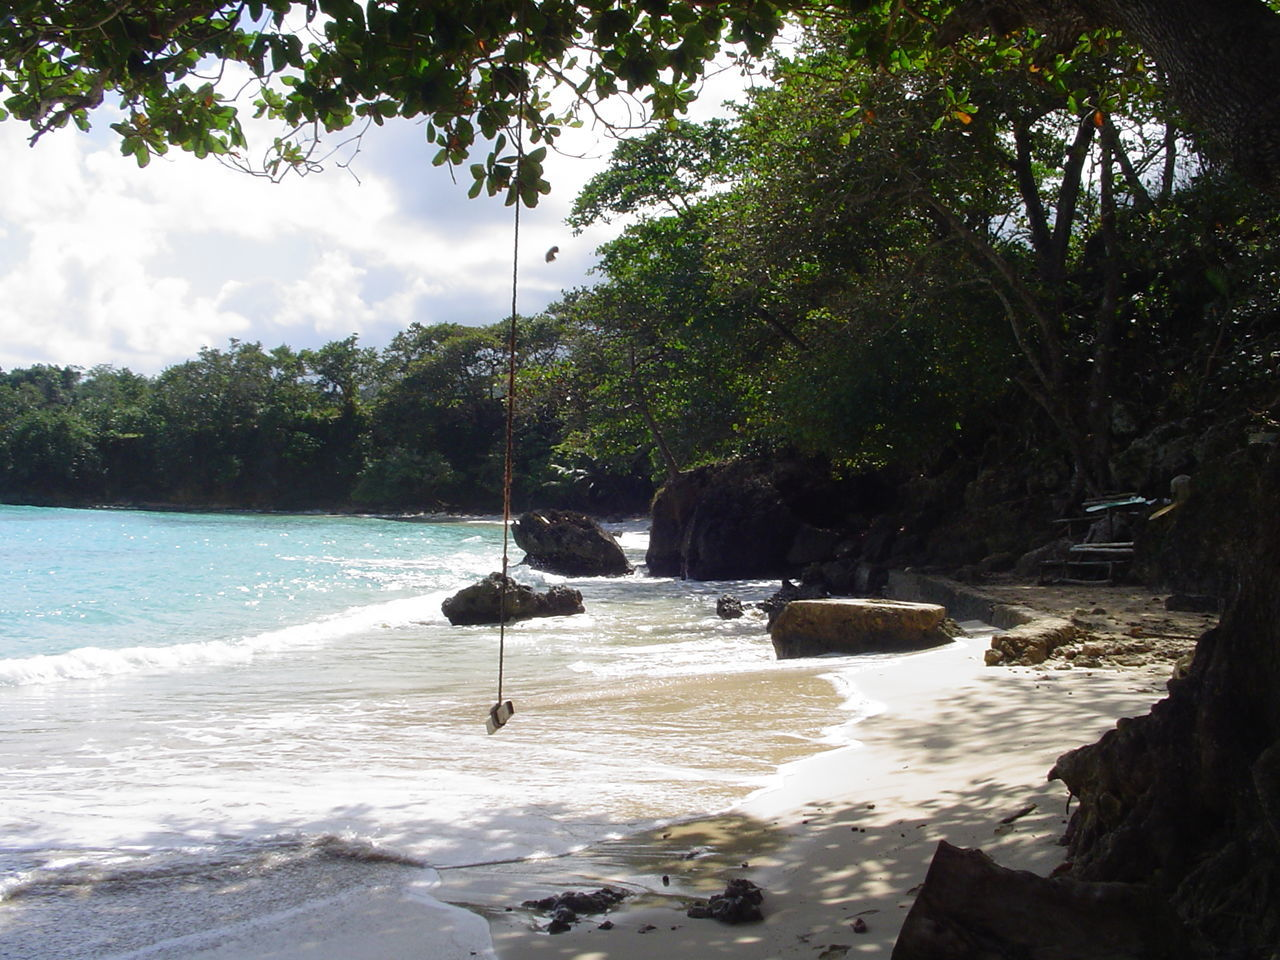 Beach Beauty In Nature Calm Cloud Day Idyllic Jamaica Jamaican Majestic Nature Remote Scenics Sea Shore Sky Solitude Tide Tourism Tranquil Scene Tranquility Tree Vacations Water Wave